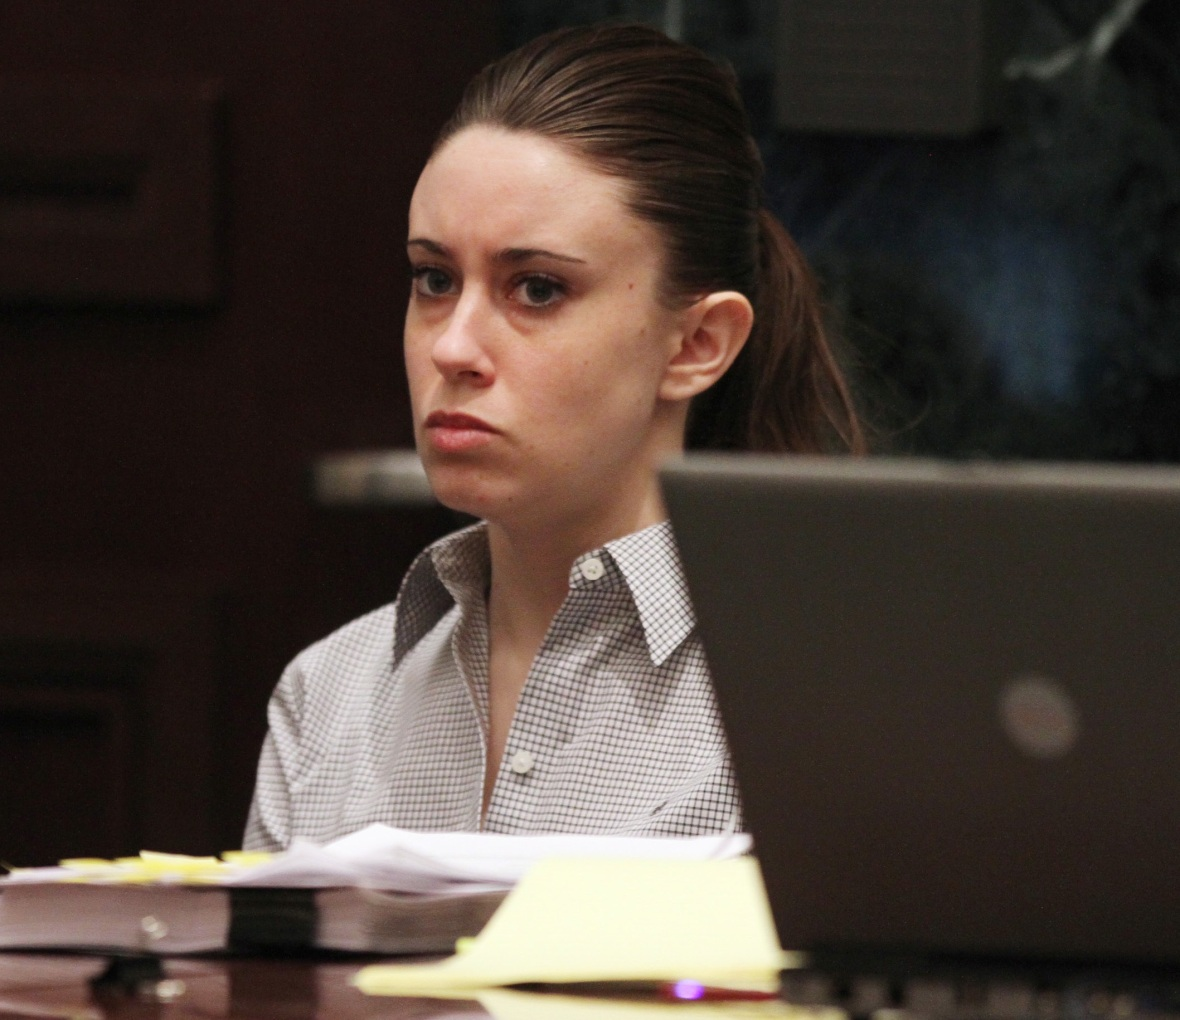 casey anthony getty images